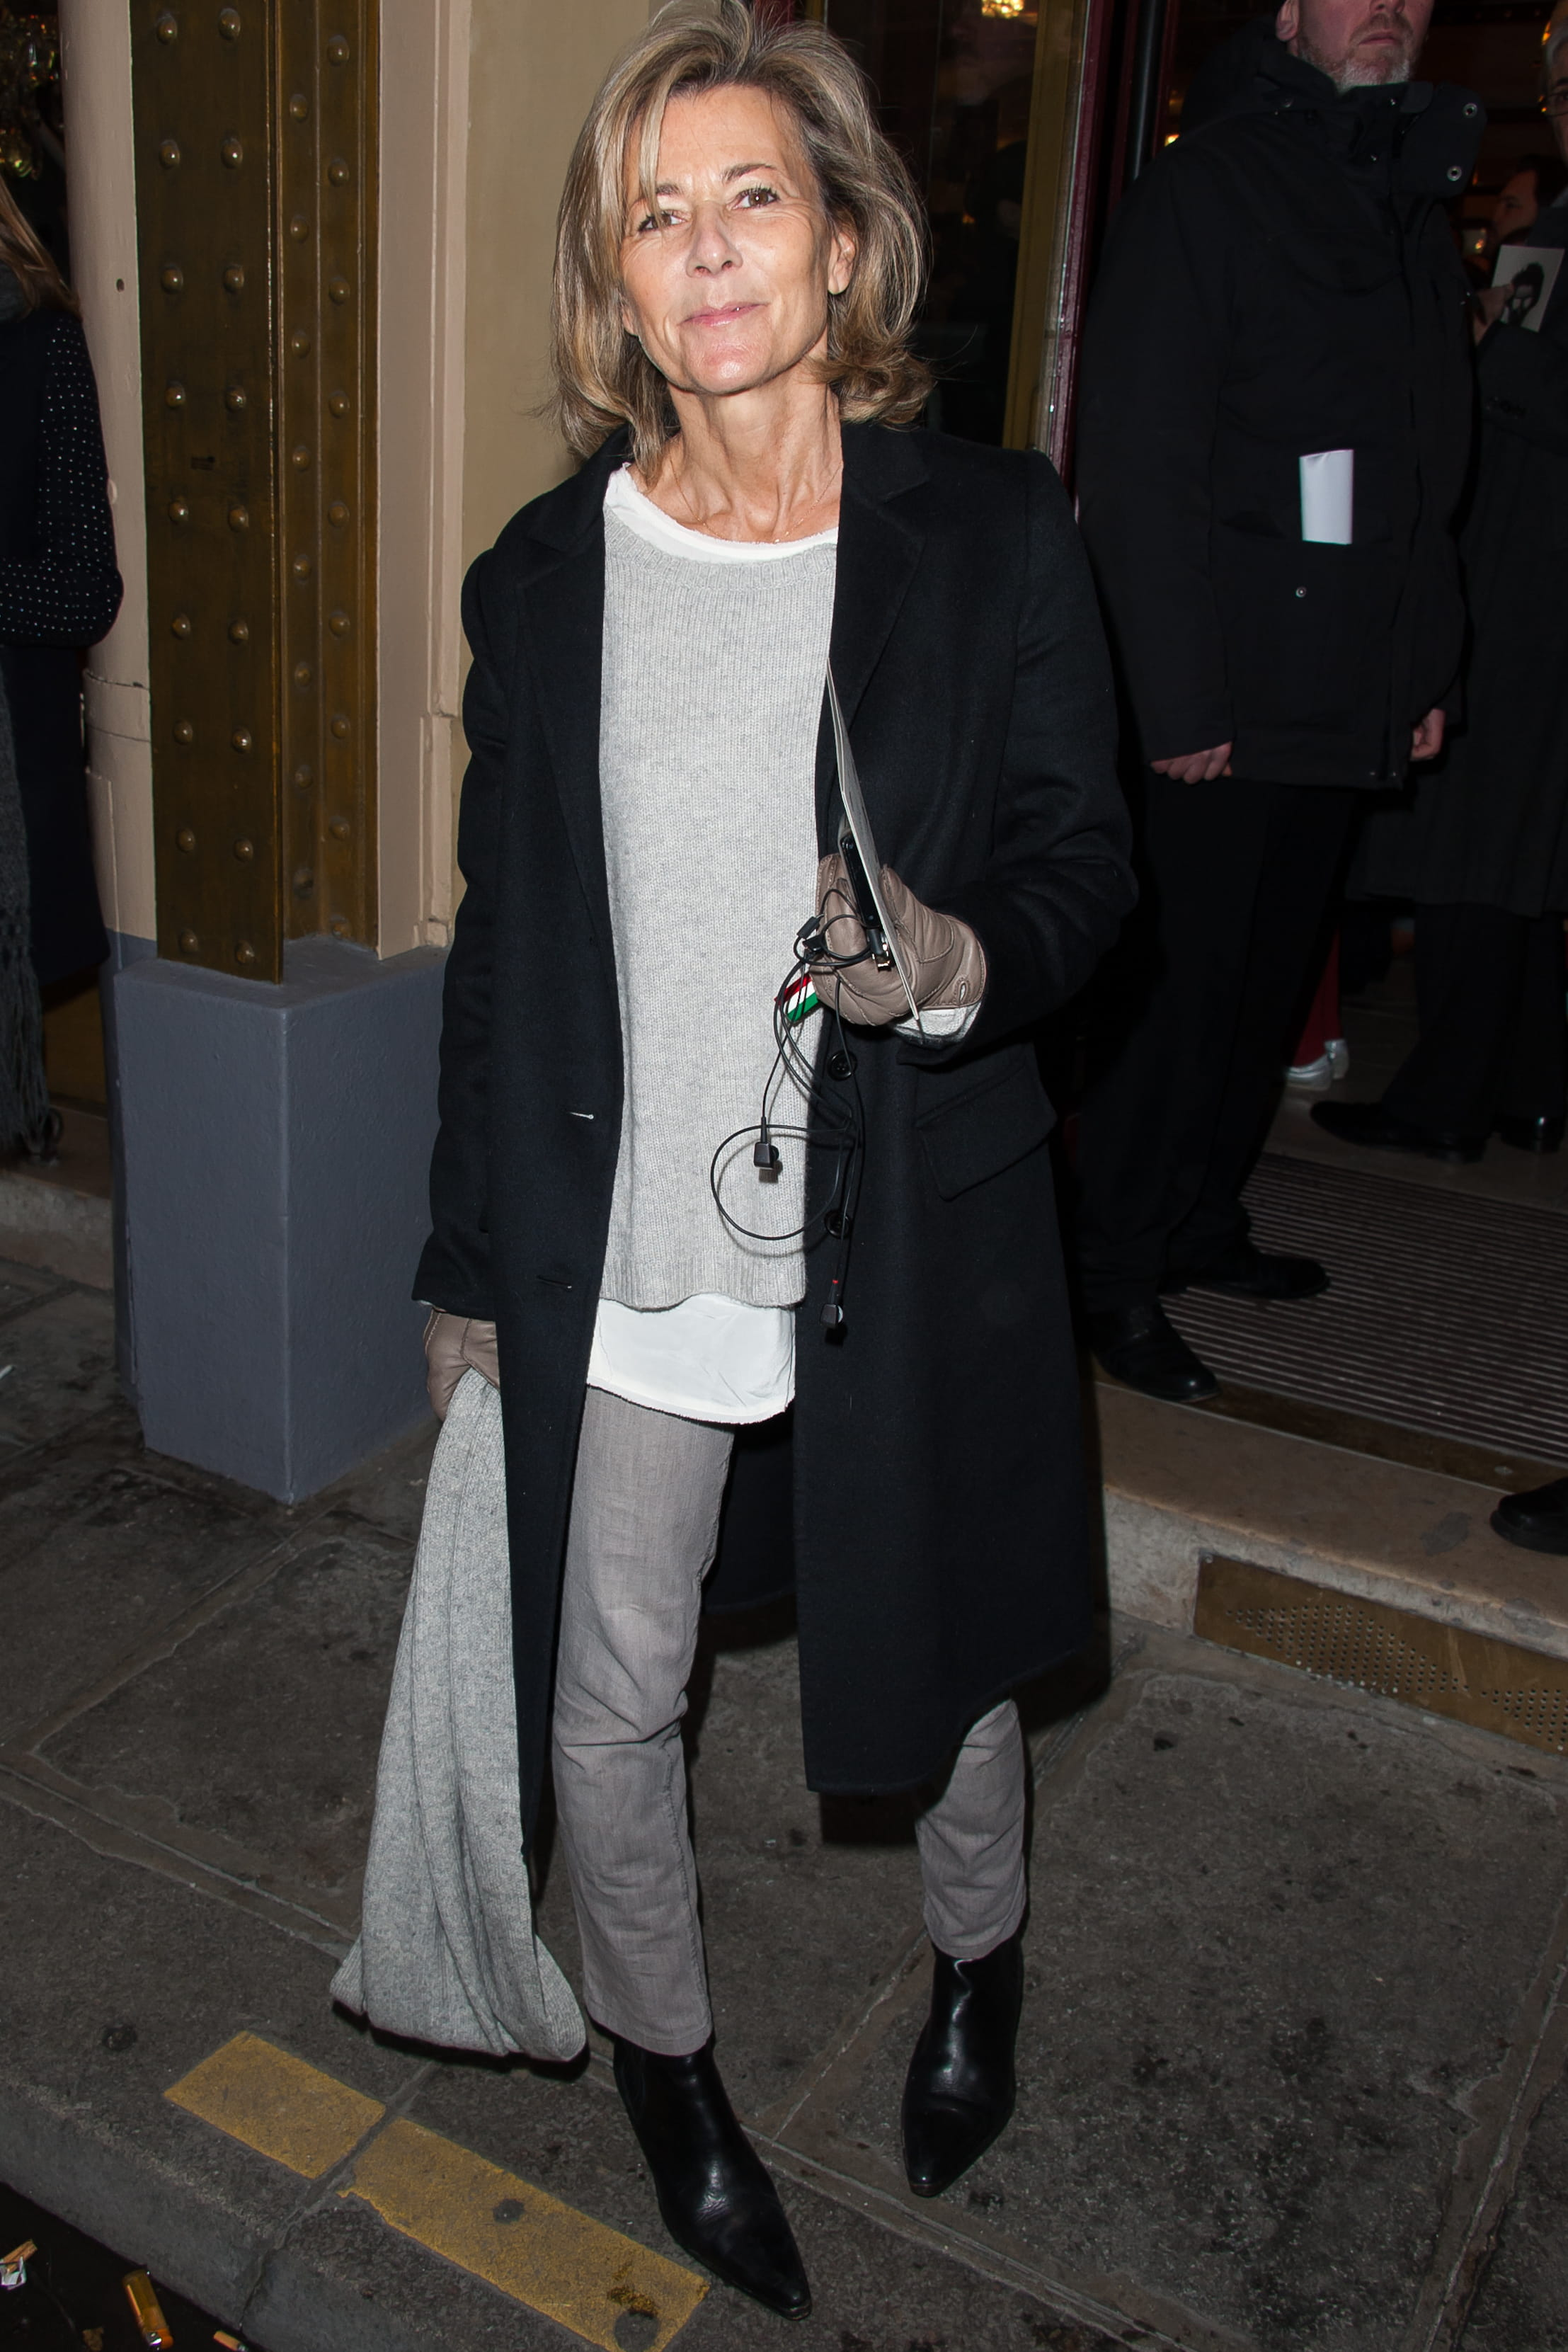 Claire chazal cougar - 4 2